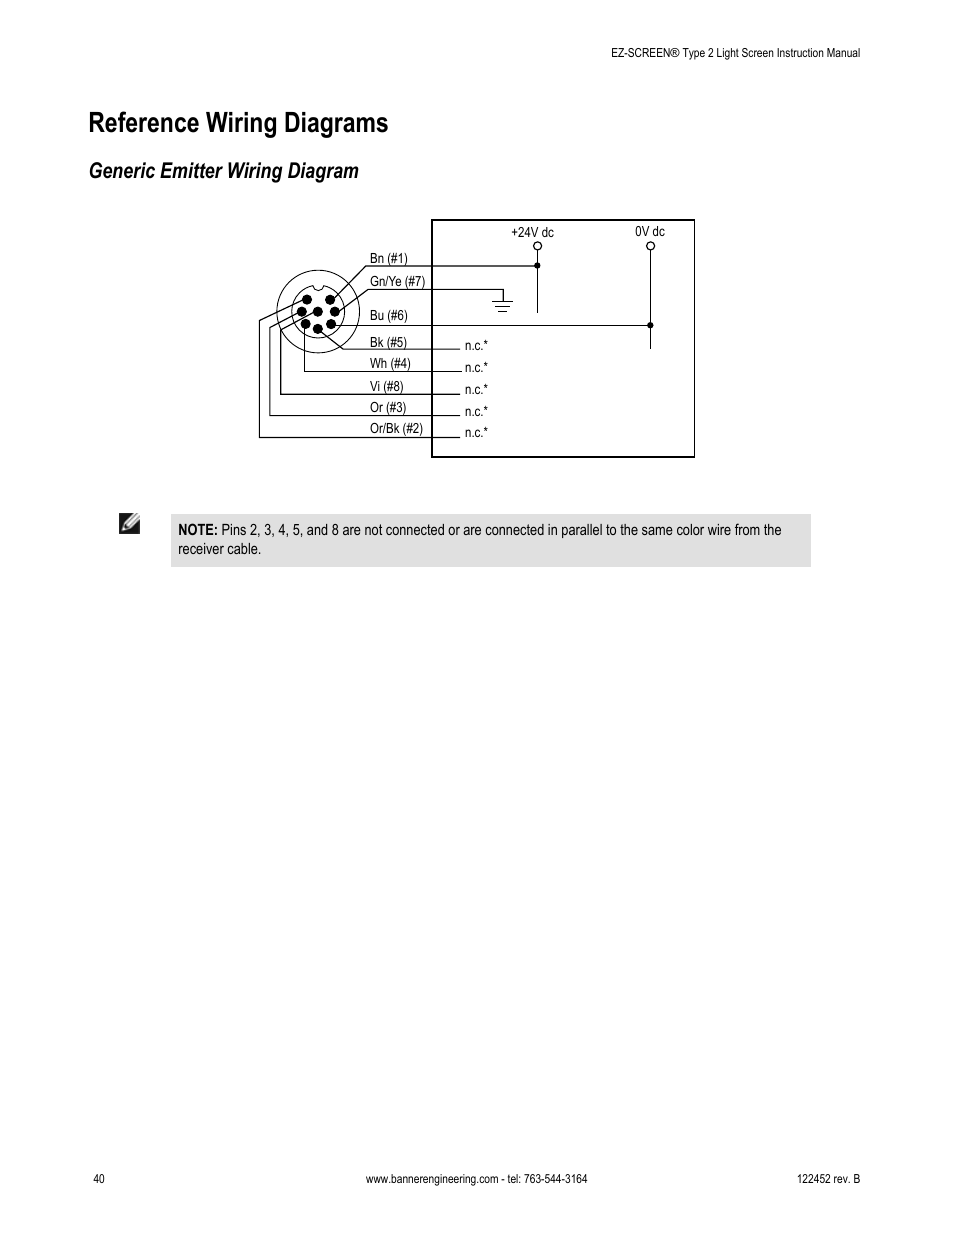 Reference wiring diagrams, Generic emitter wiring diagram